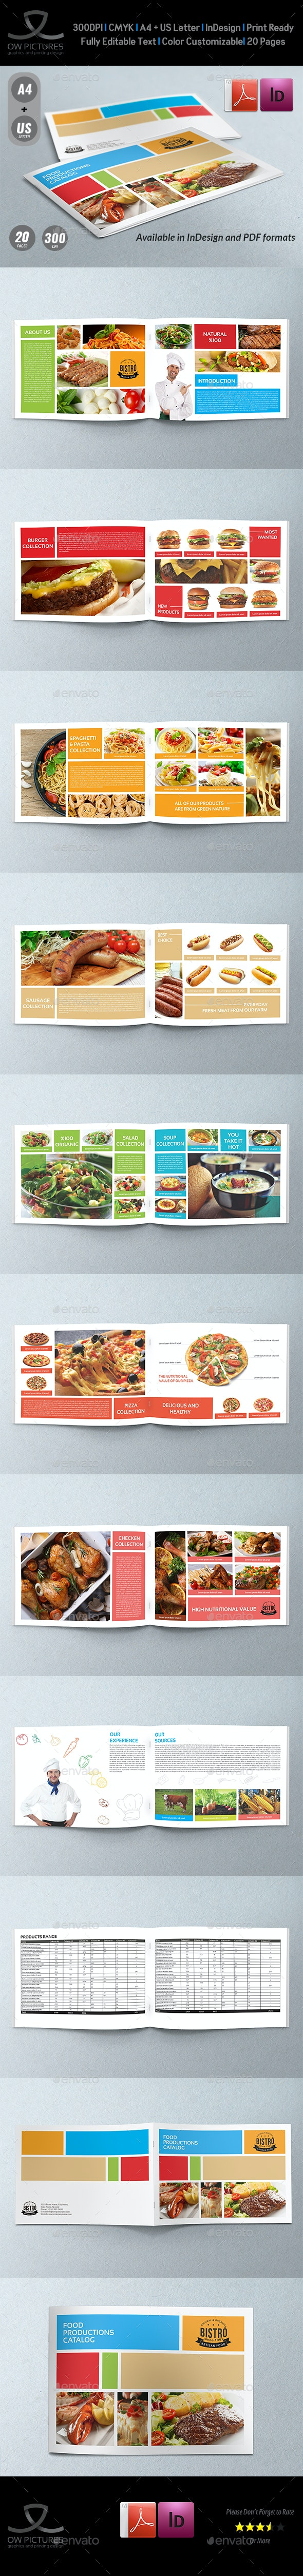 Food Products Catalog Brochure Template Vol.2 - 20 Pages - Catalogs Brochures